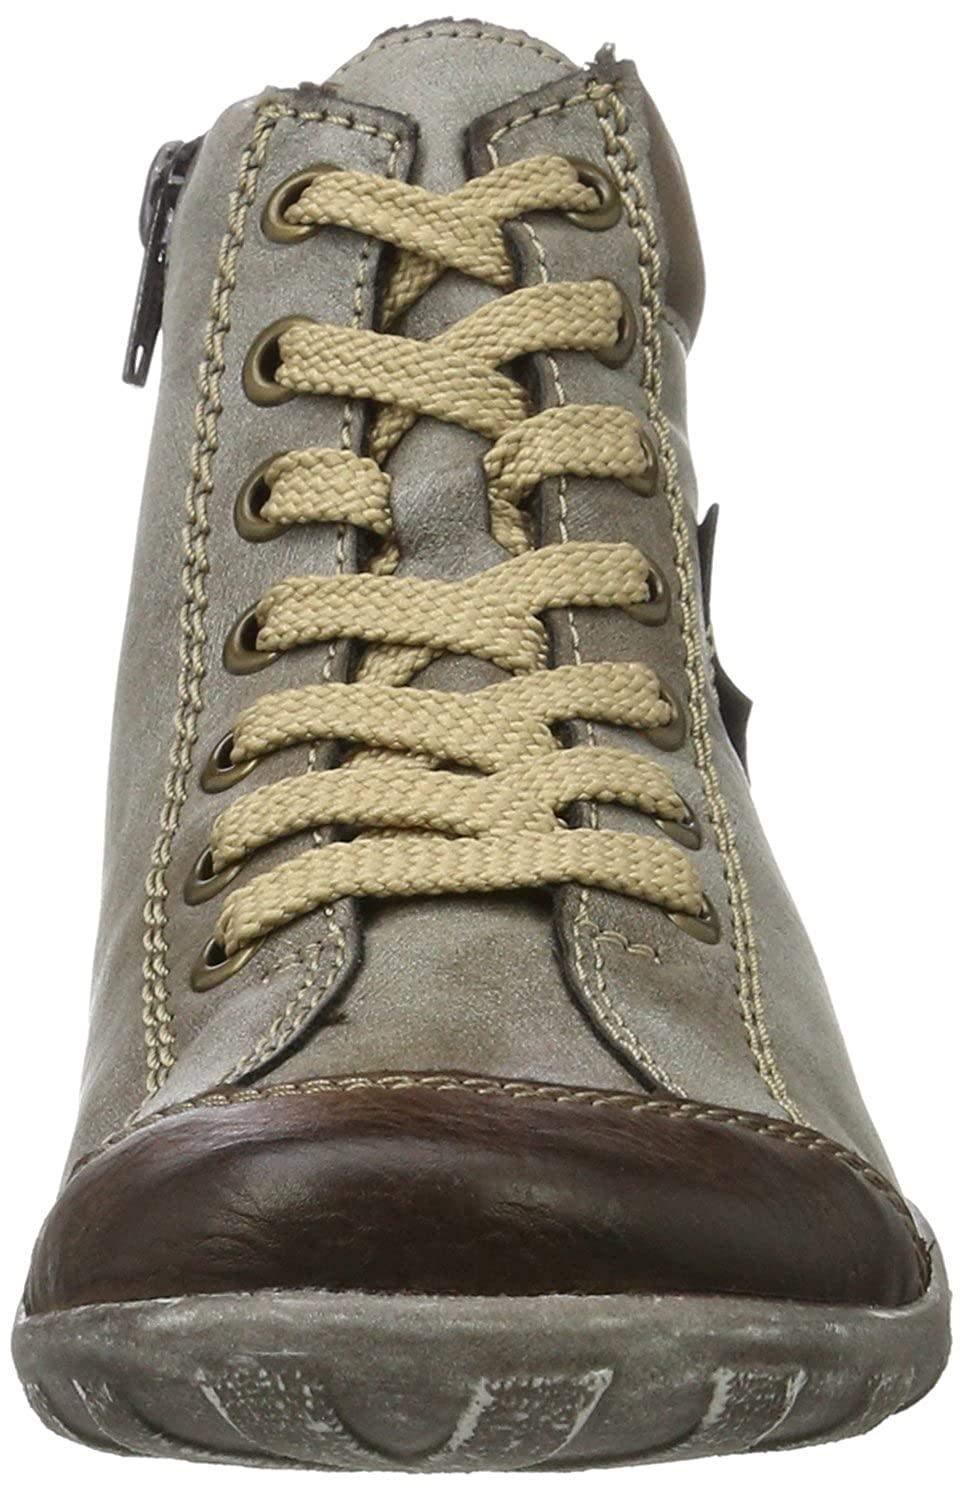 Rieker Women/'s L6540 Hi-Top Trainers